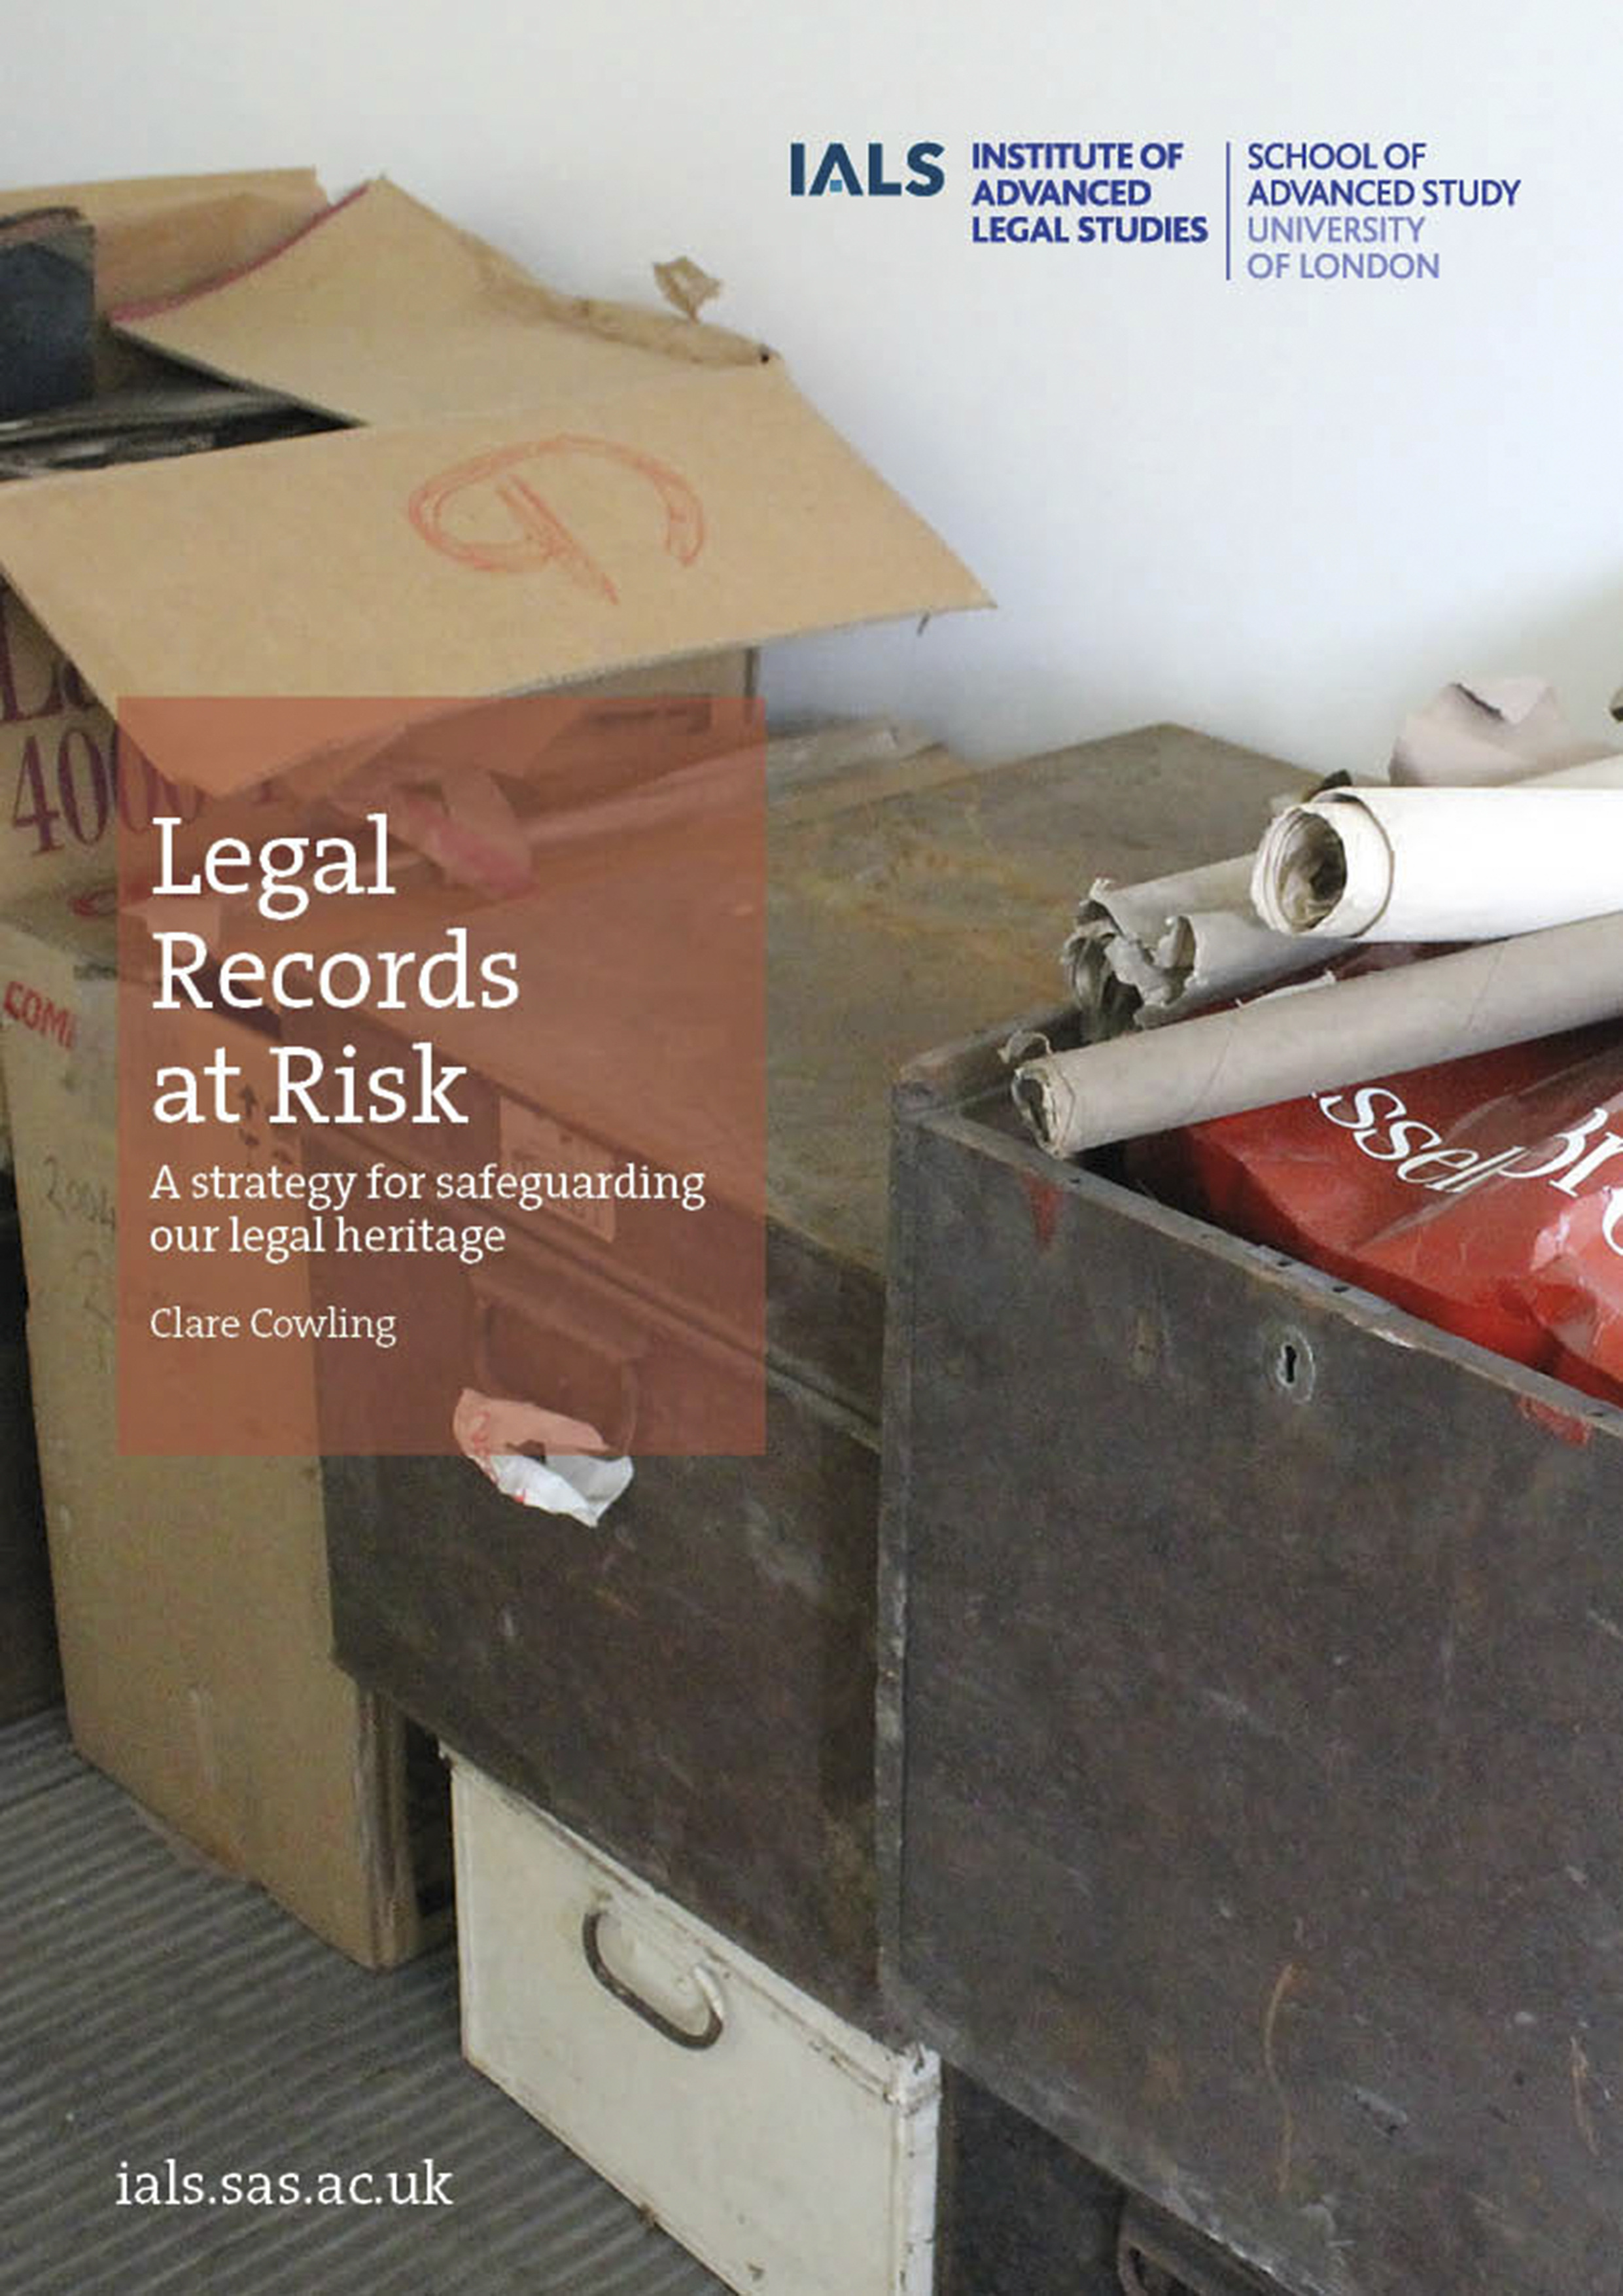 Legal Records at Risk: A strategy for safeguarding our legal heritage